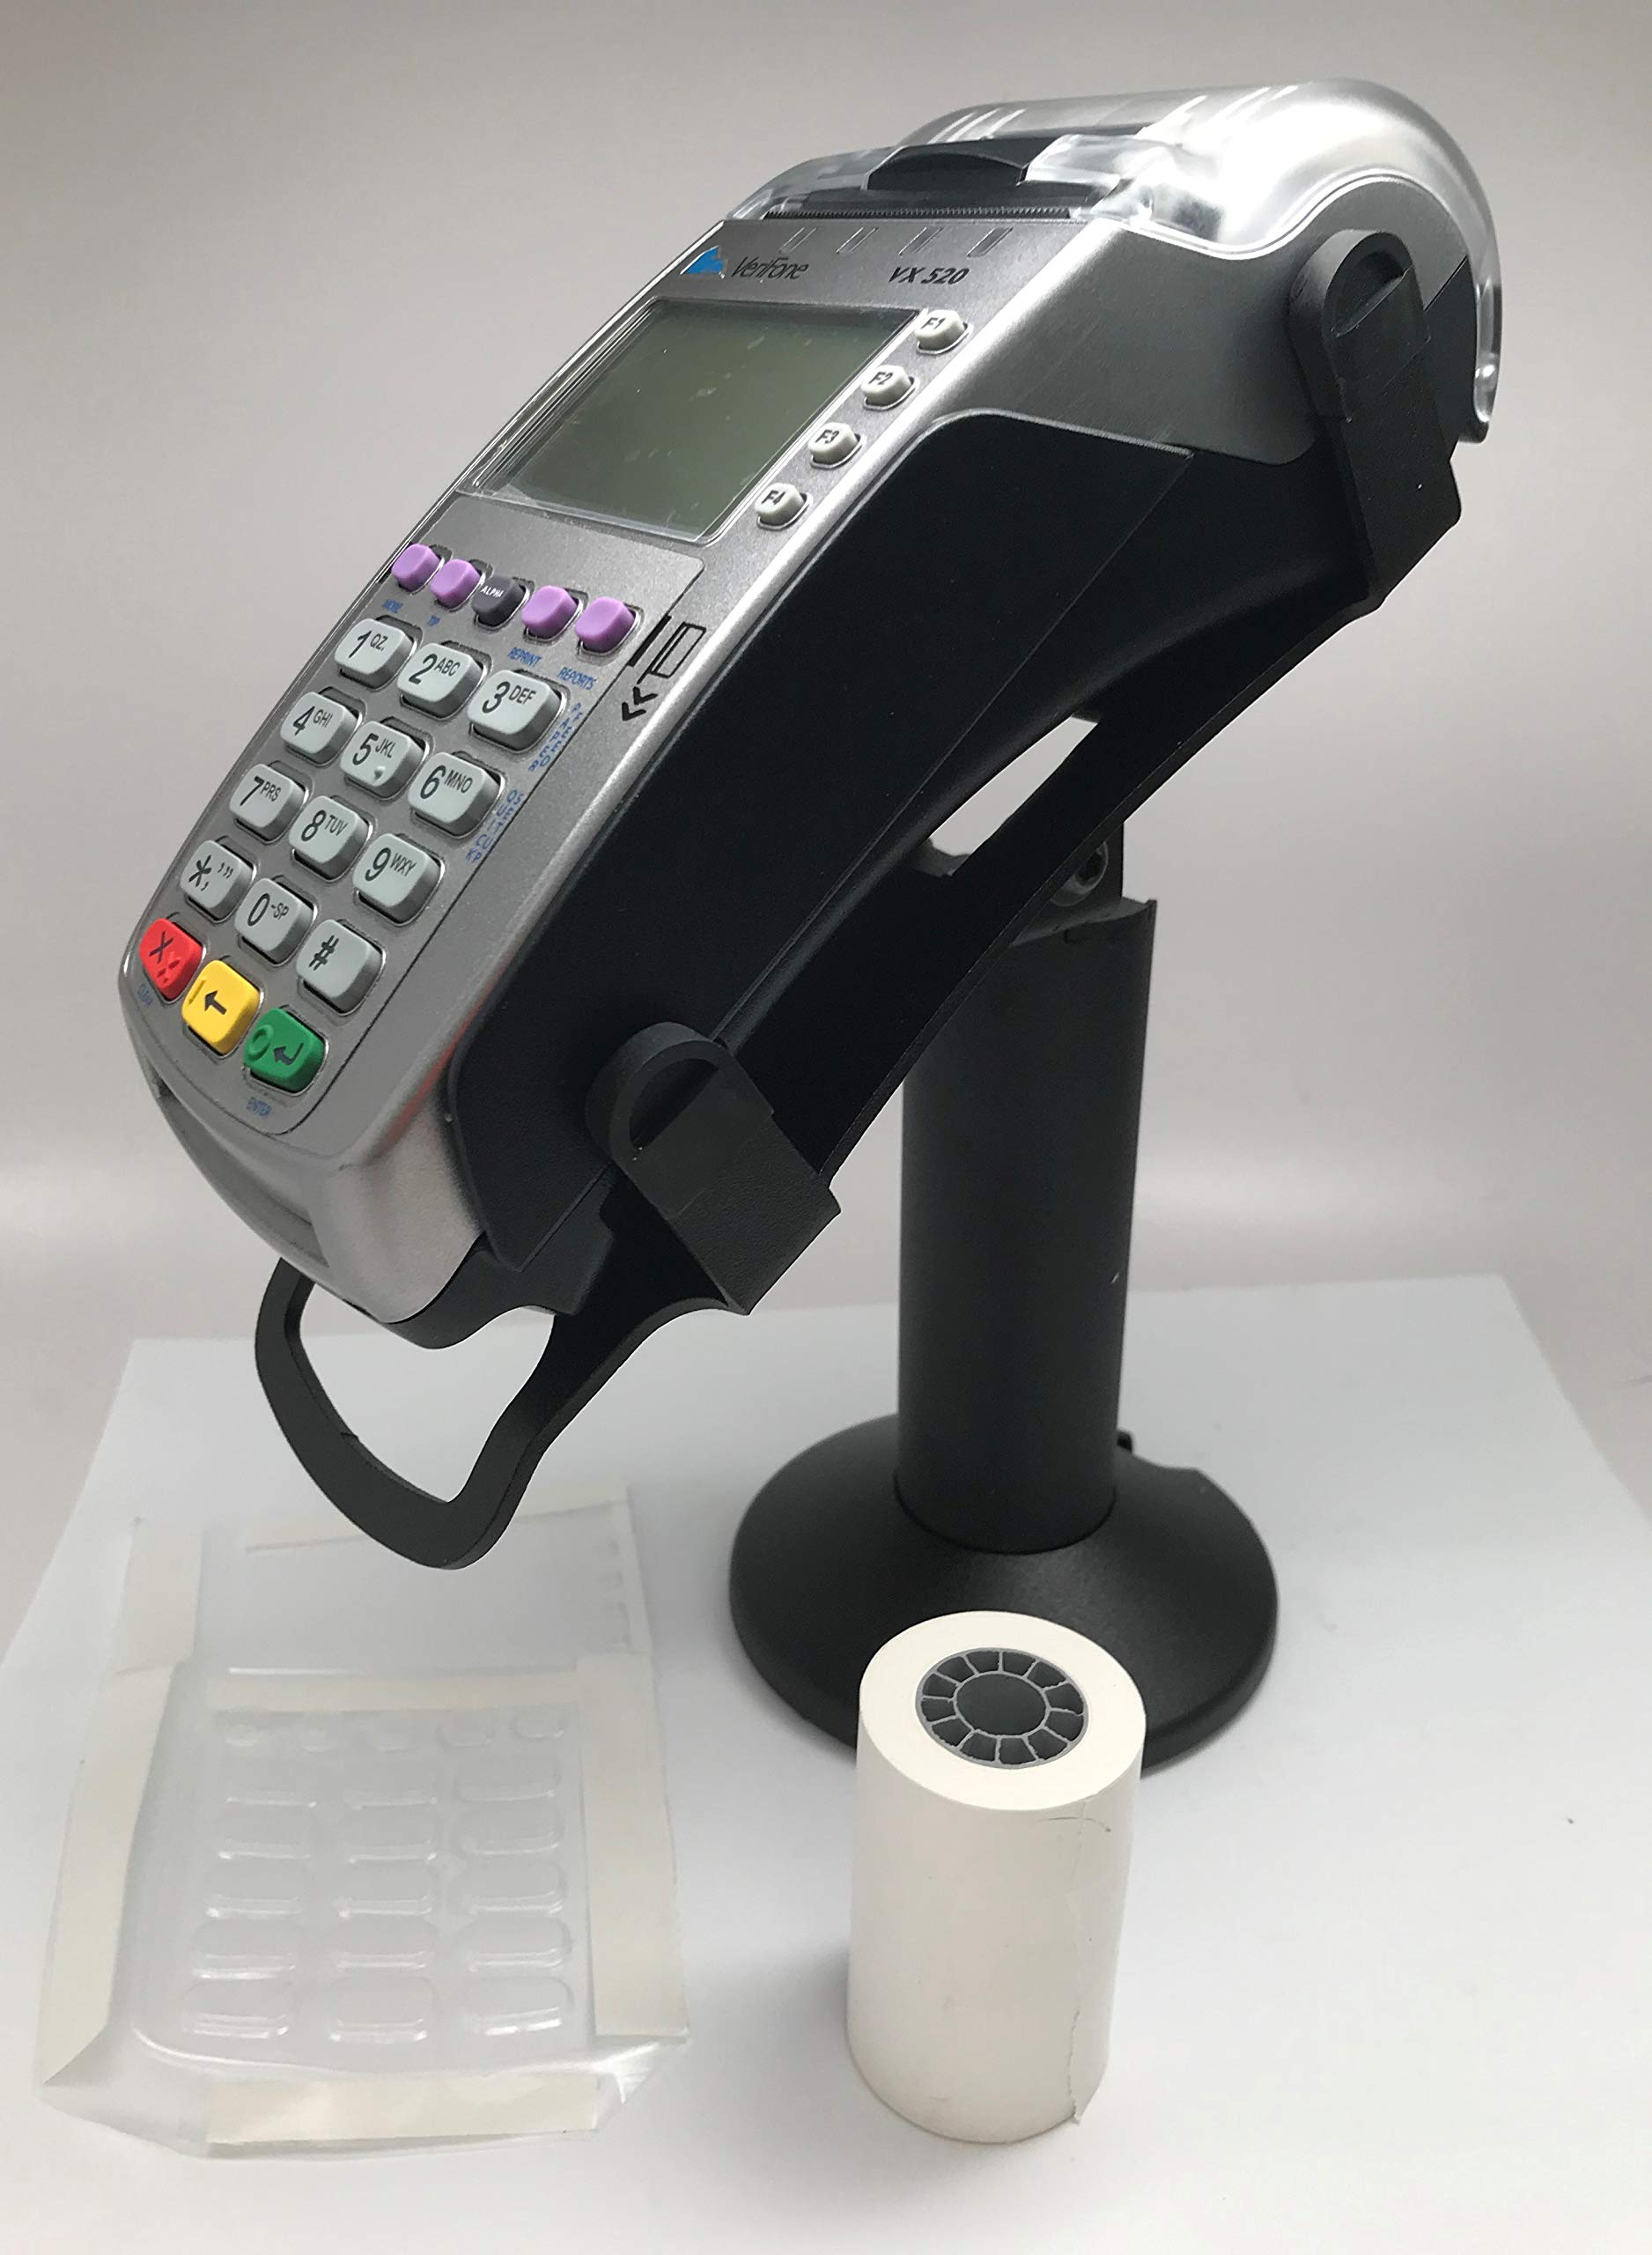 Verifone Vx520 EMV CTLS Terminal, Swivel Stand, Full Device Spill Cover and 2-1/4'' x 50' (24 Rolls) Thermal Paper by Verifone and Discount Credit Card Supply (Image #1)